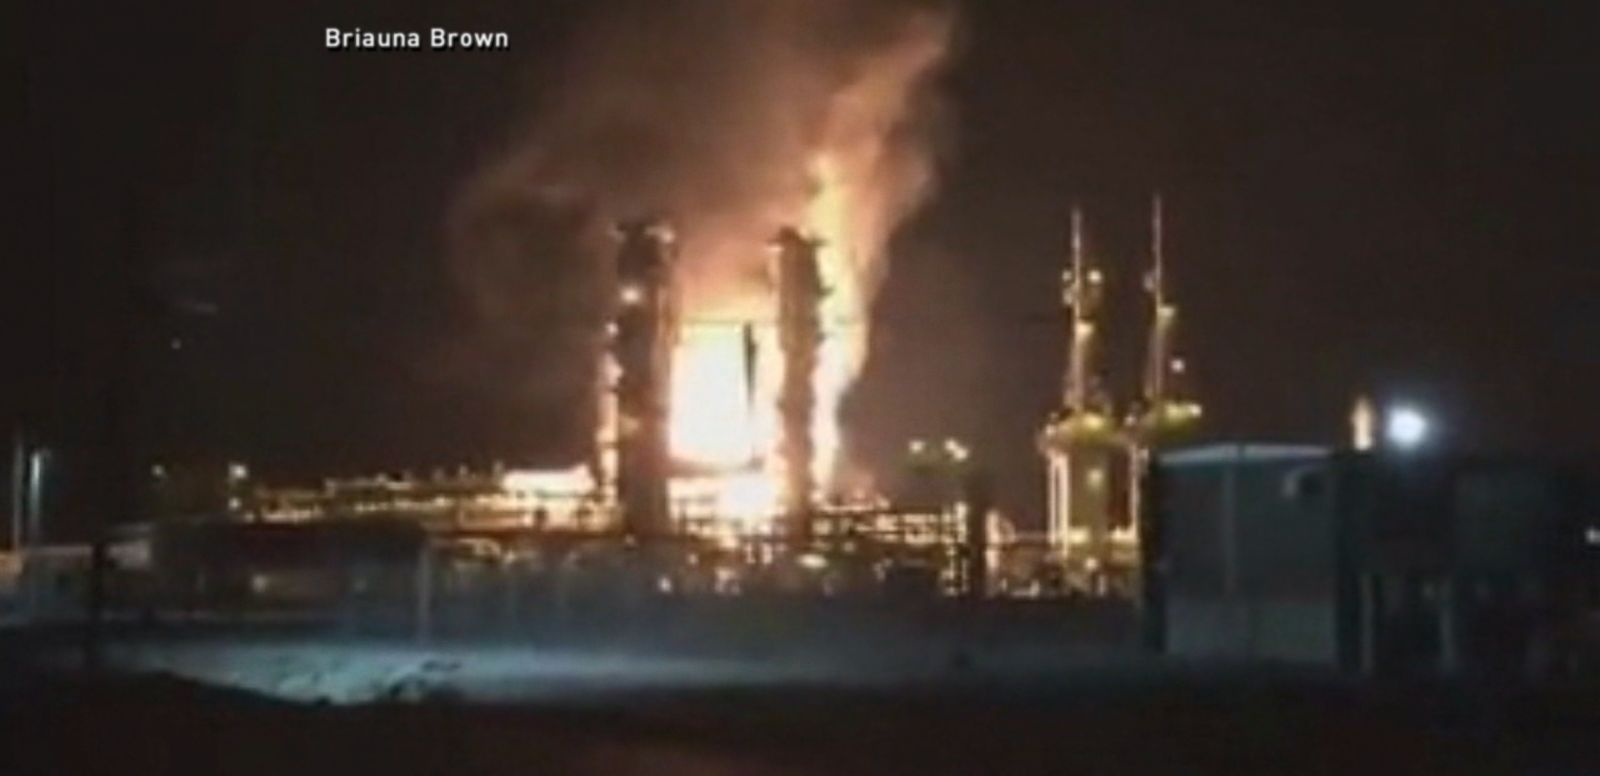 VIDEO: An explosion and fire broke out at a BP natural gas plant along Mississippi's Gulf Coast late Monday night, but police said there were no injuries.